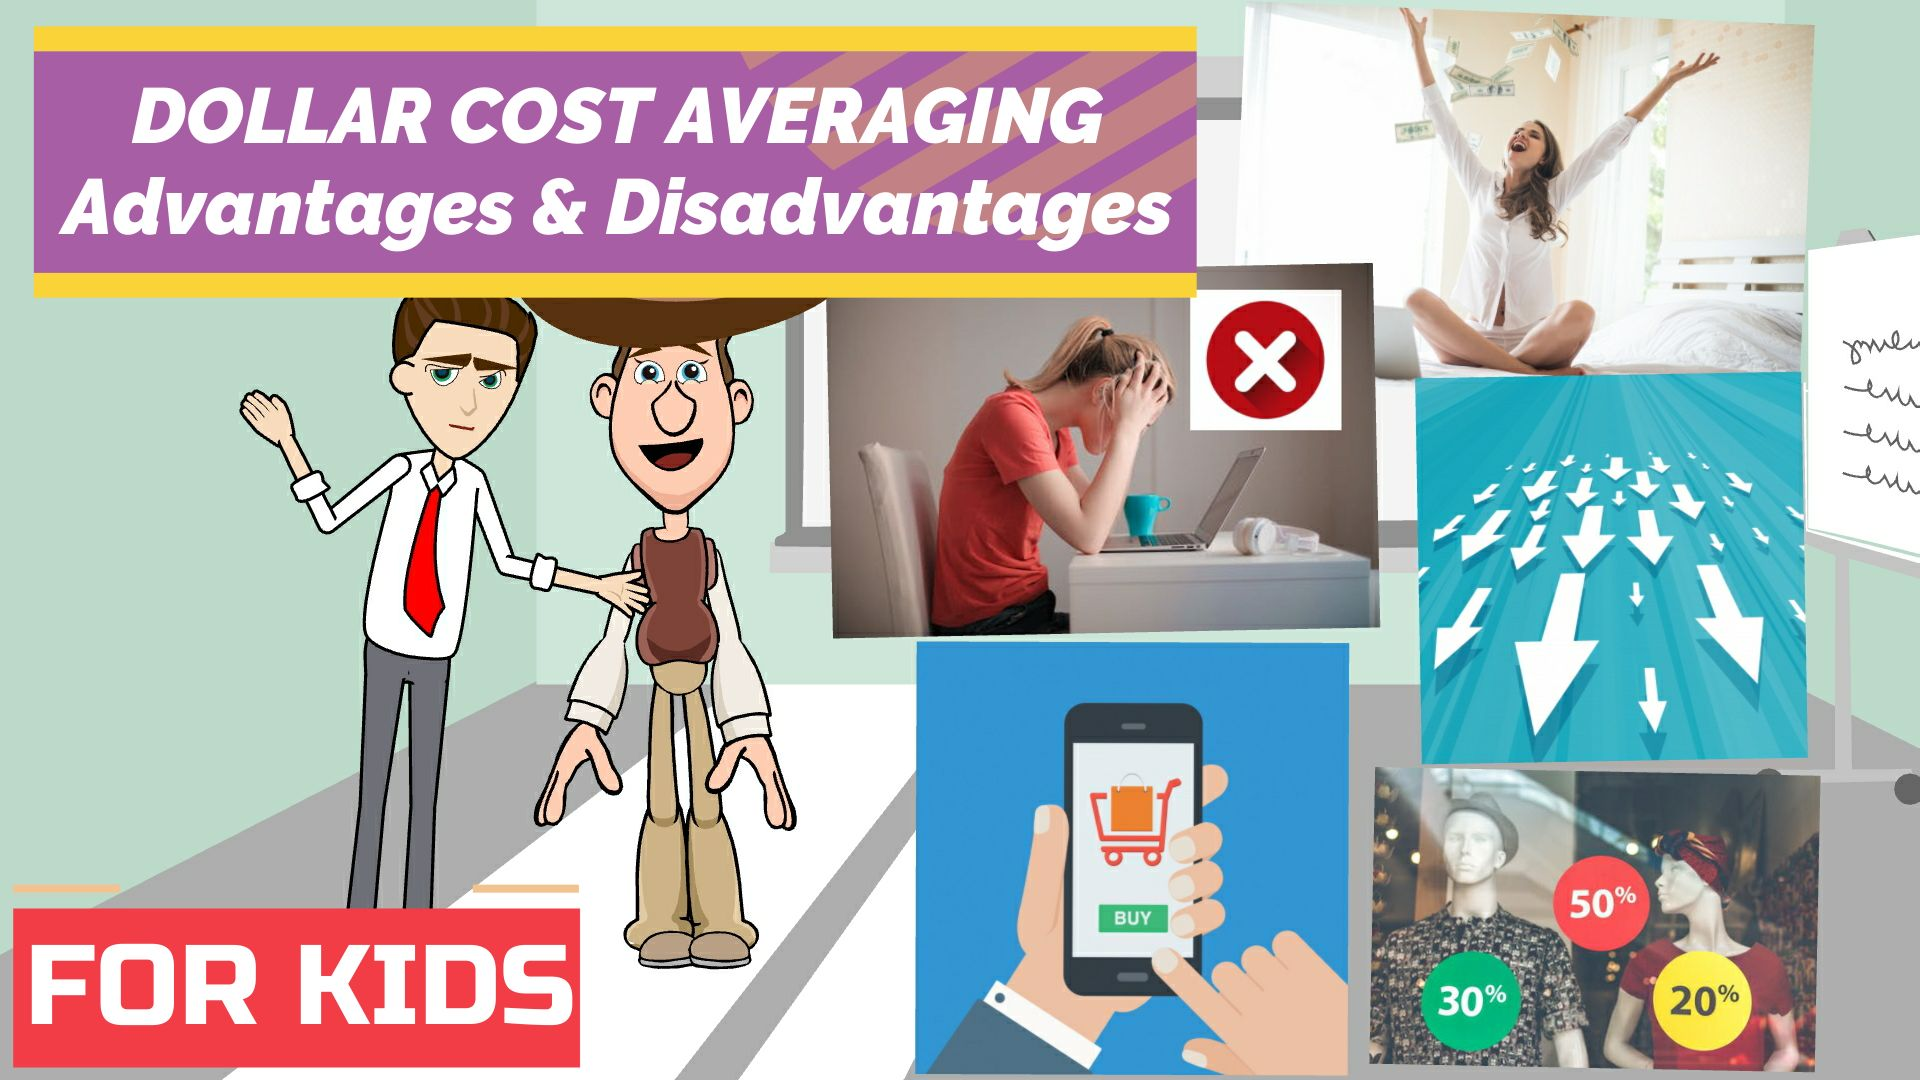 Dollar Cost Averaging - Advantages and disadvantages